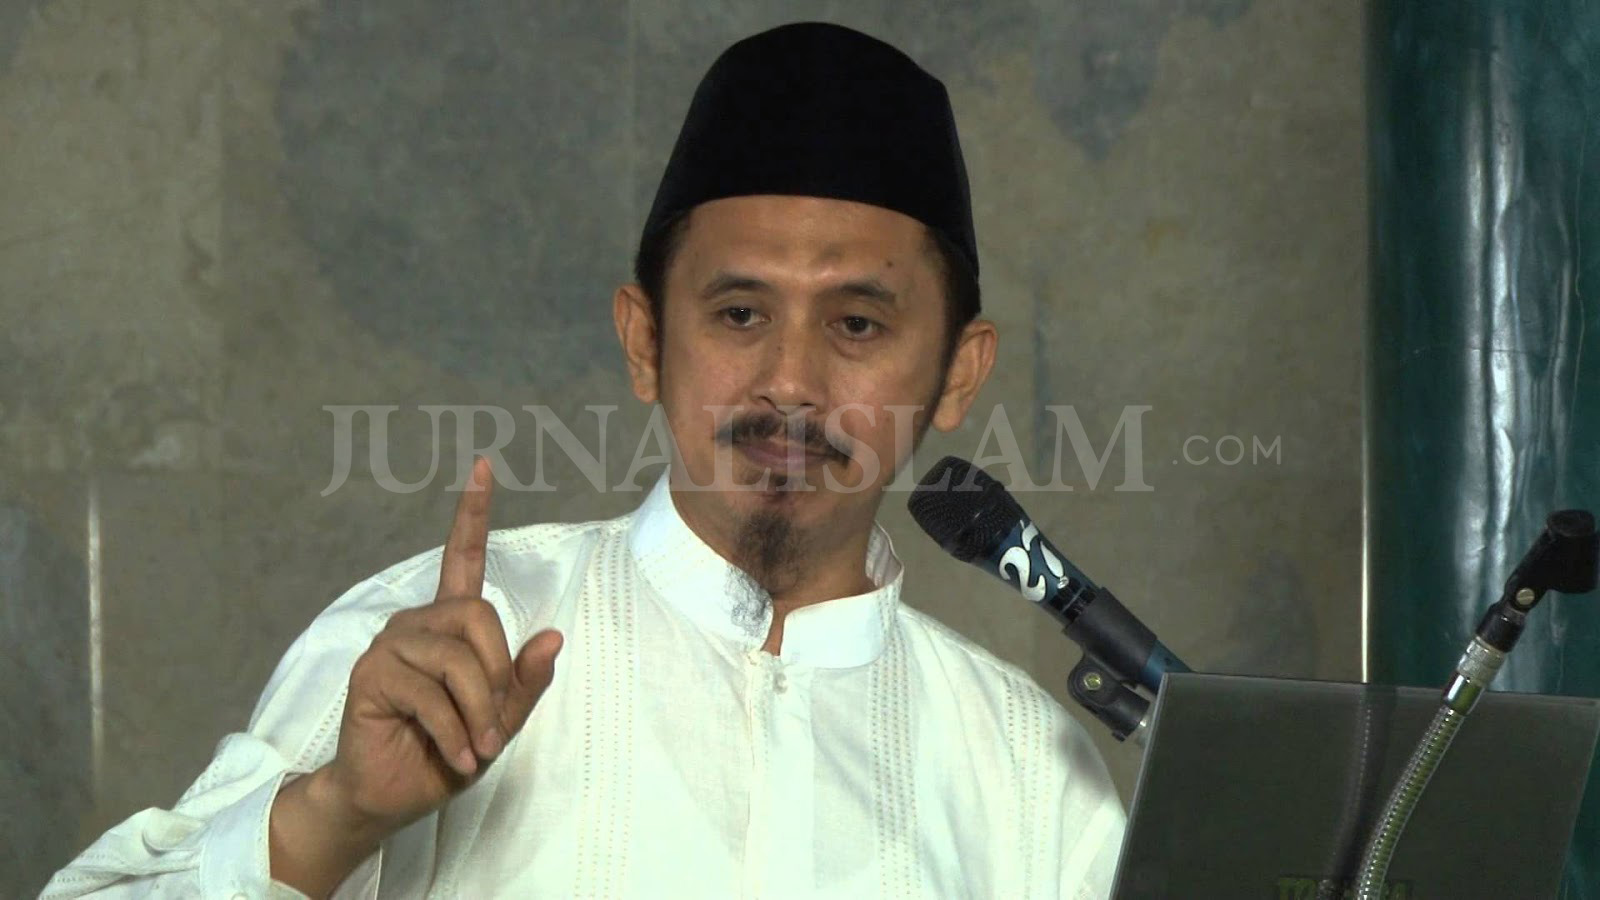 Ustadz Zaitun Rasmin Optimistic The Unity of Ummah Will be Realized